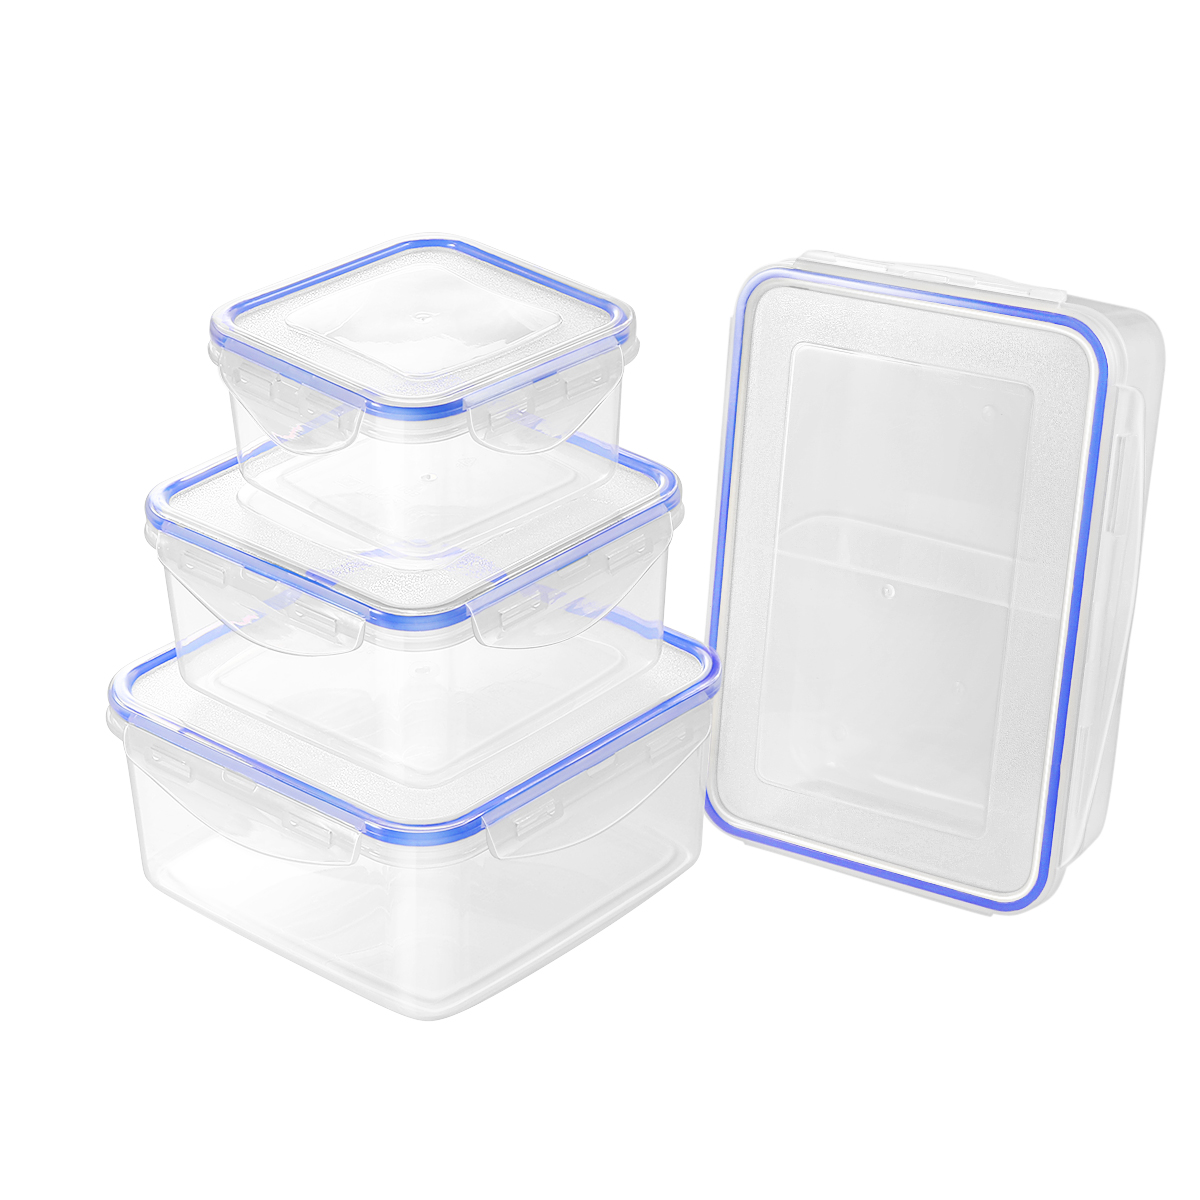 Hemoton 4PCS Transparent Plastic Food Container Durable Vegetable Fruit Storage For Home Store Restaurants Kitchen Gadget in Bottles Jars Boxes from Home Garden